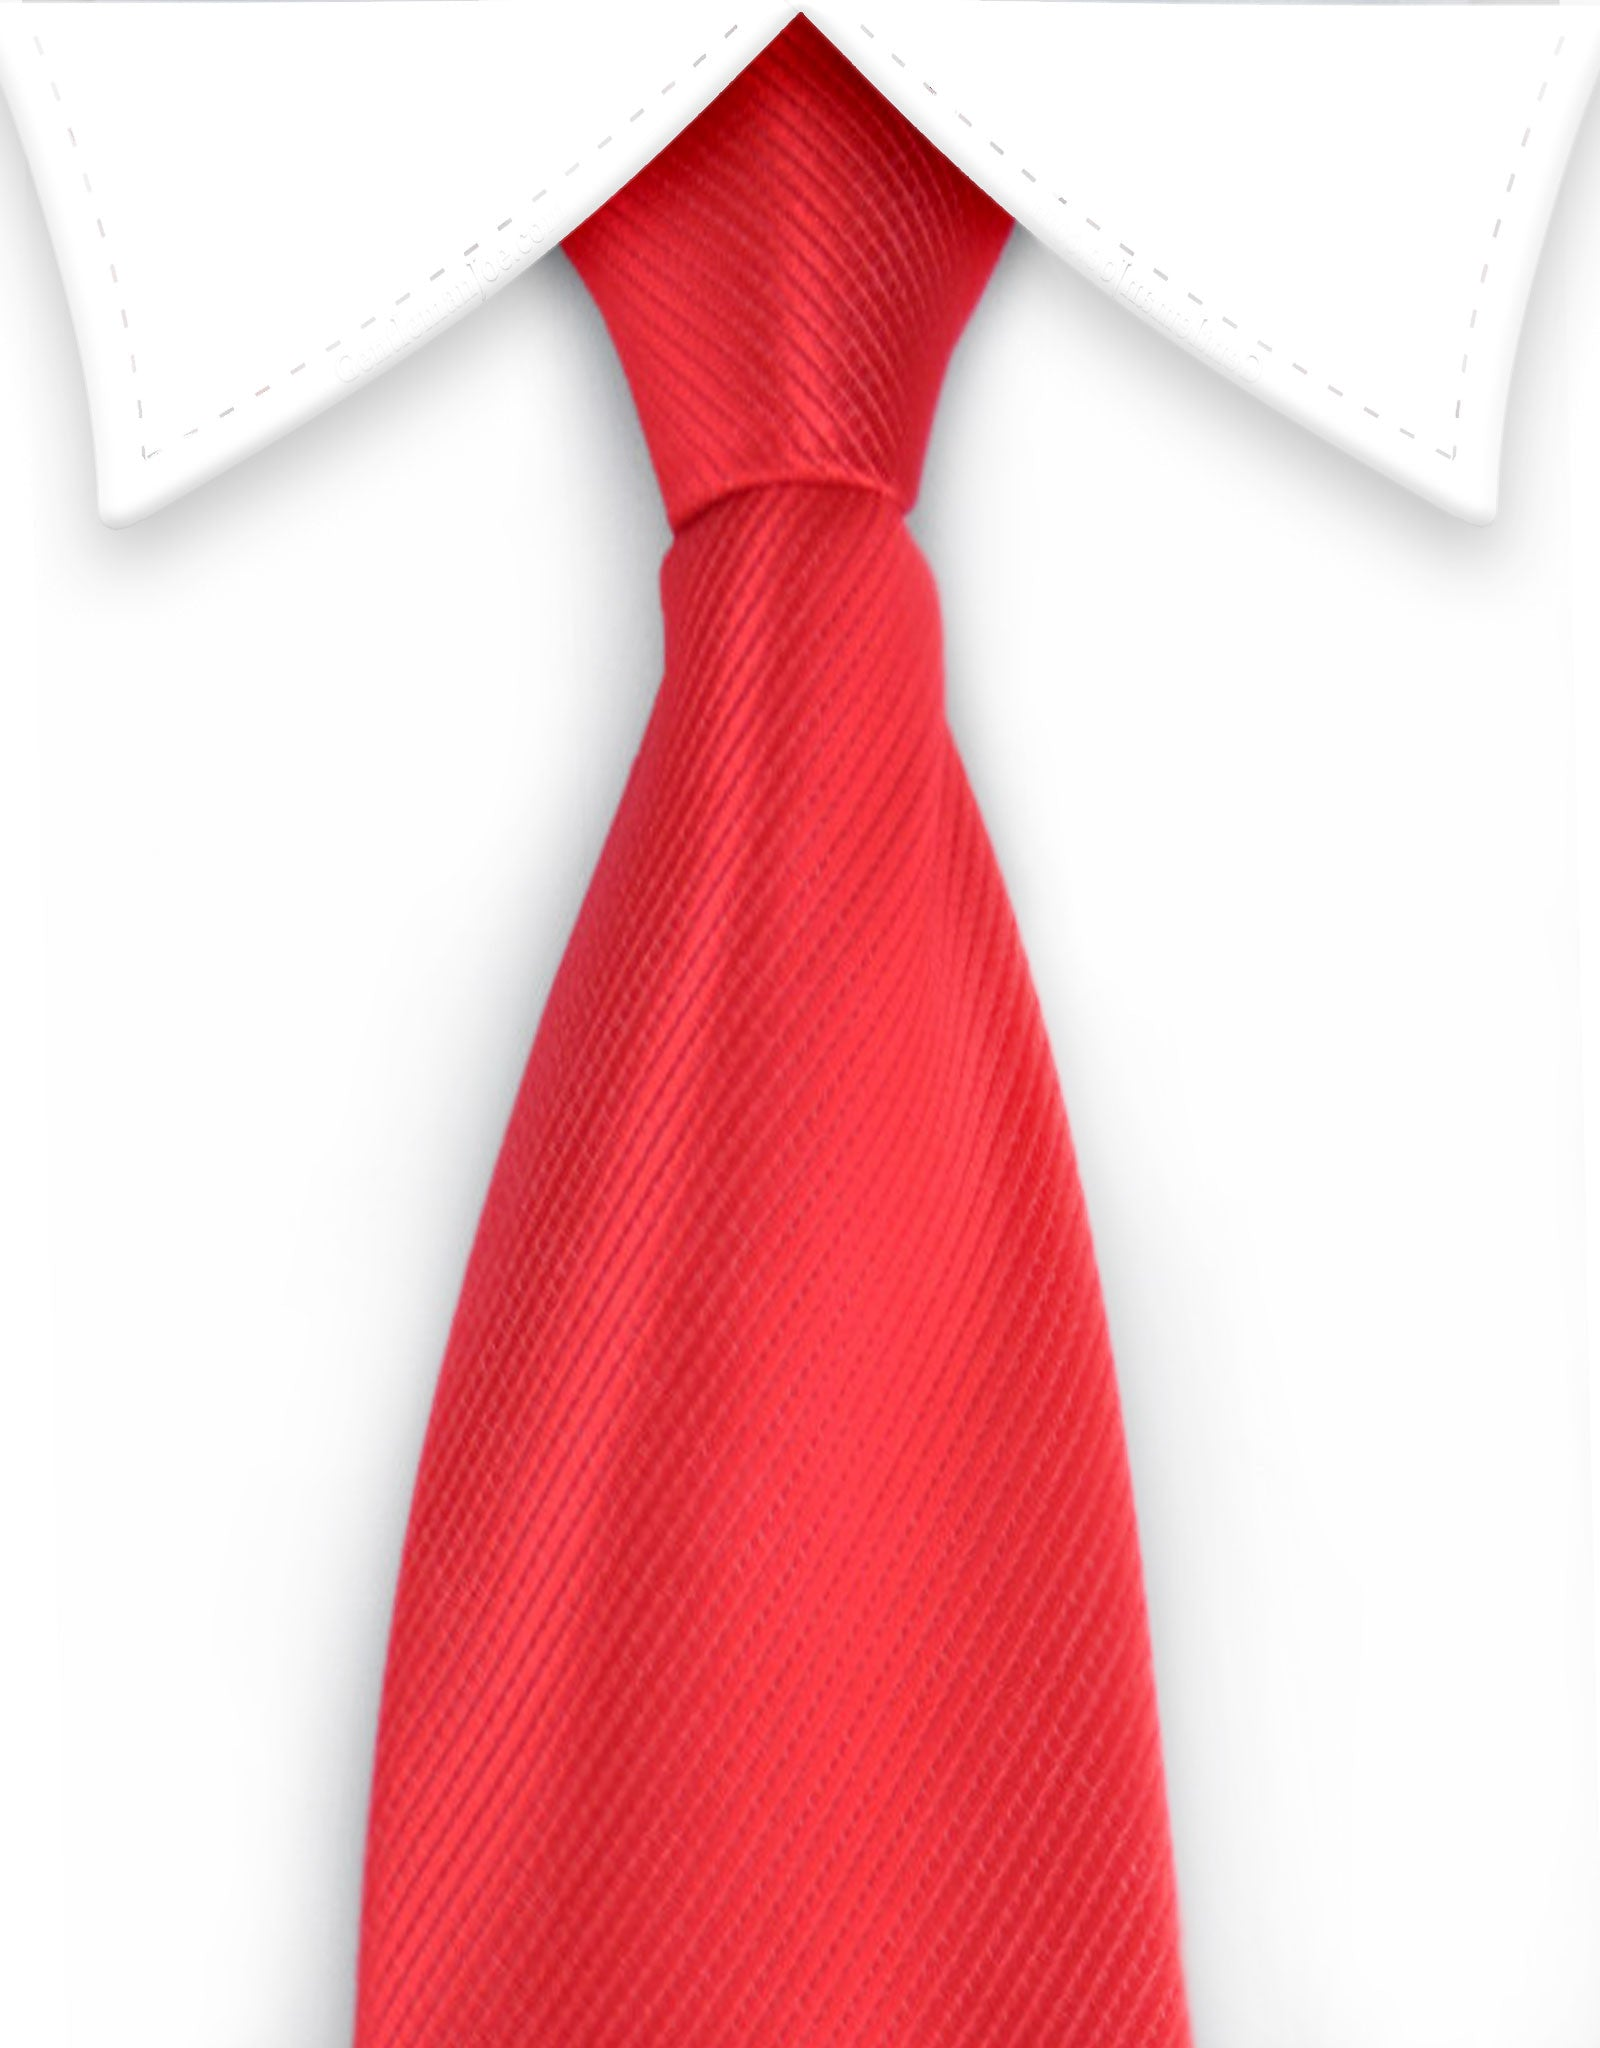 Red Child's Tie